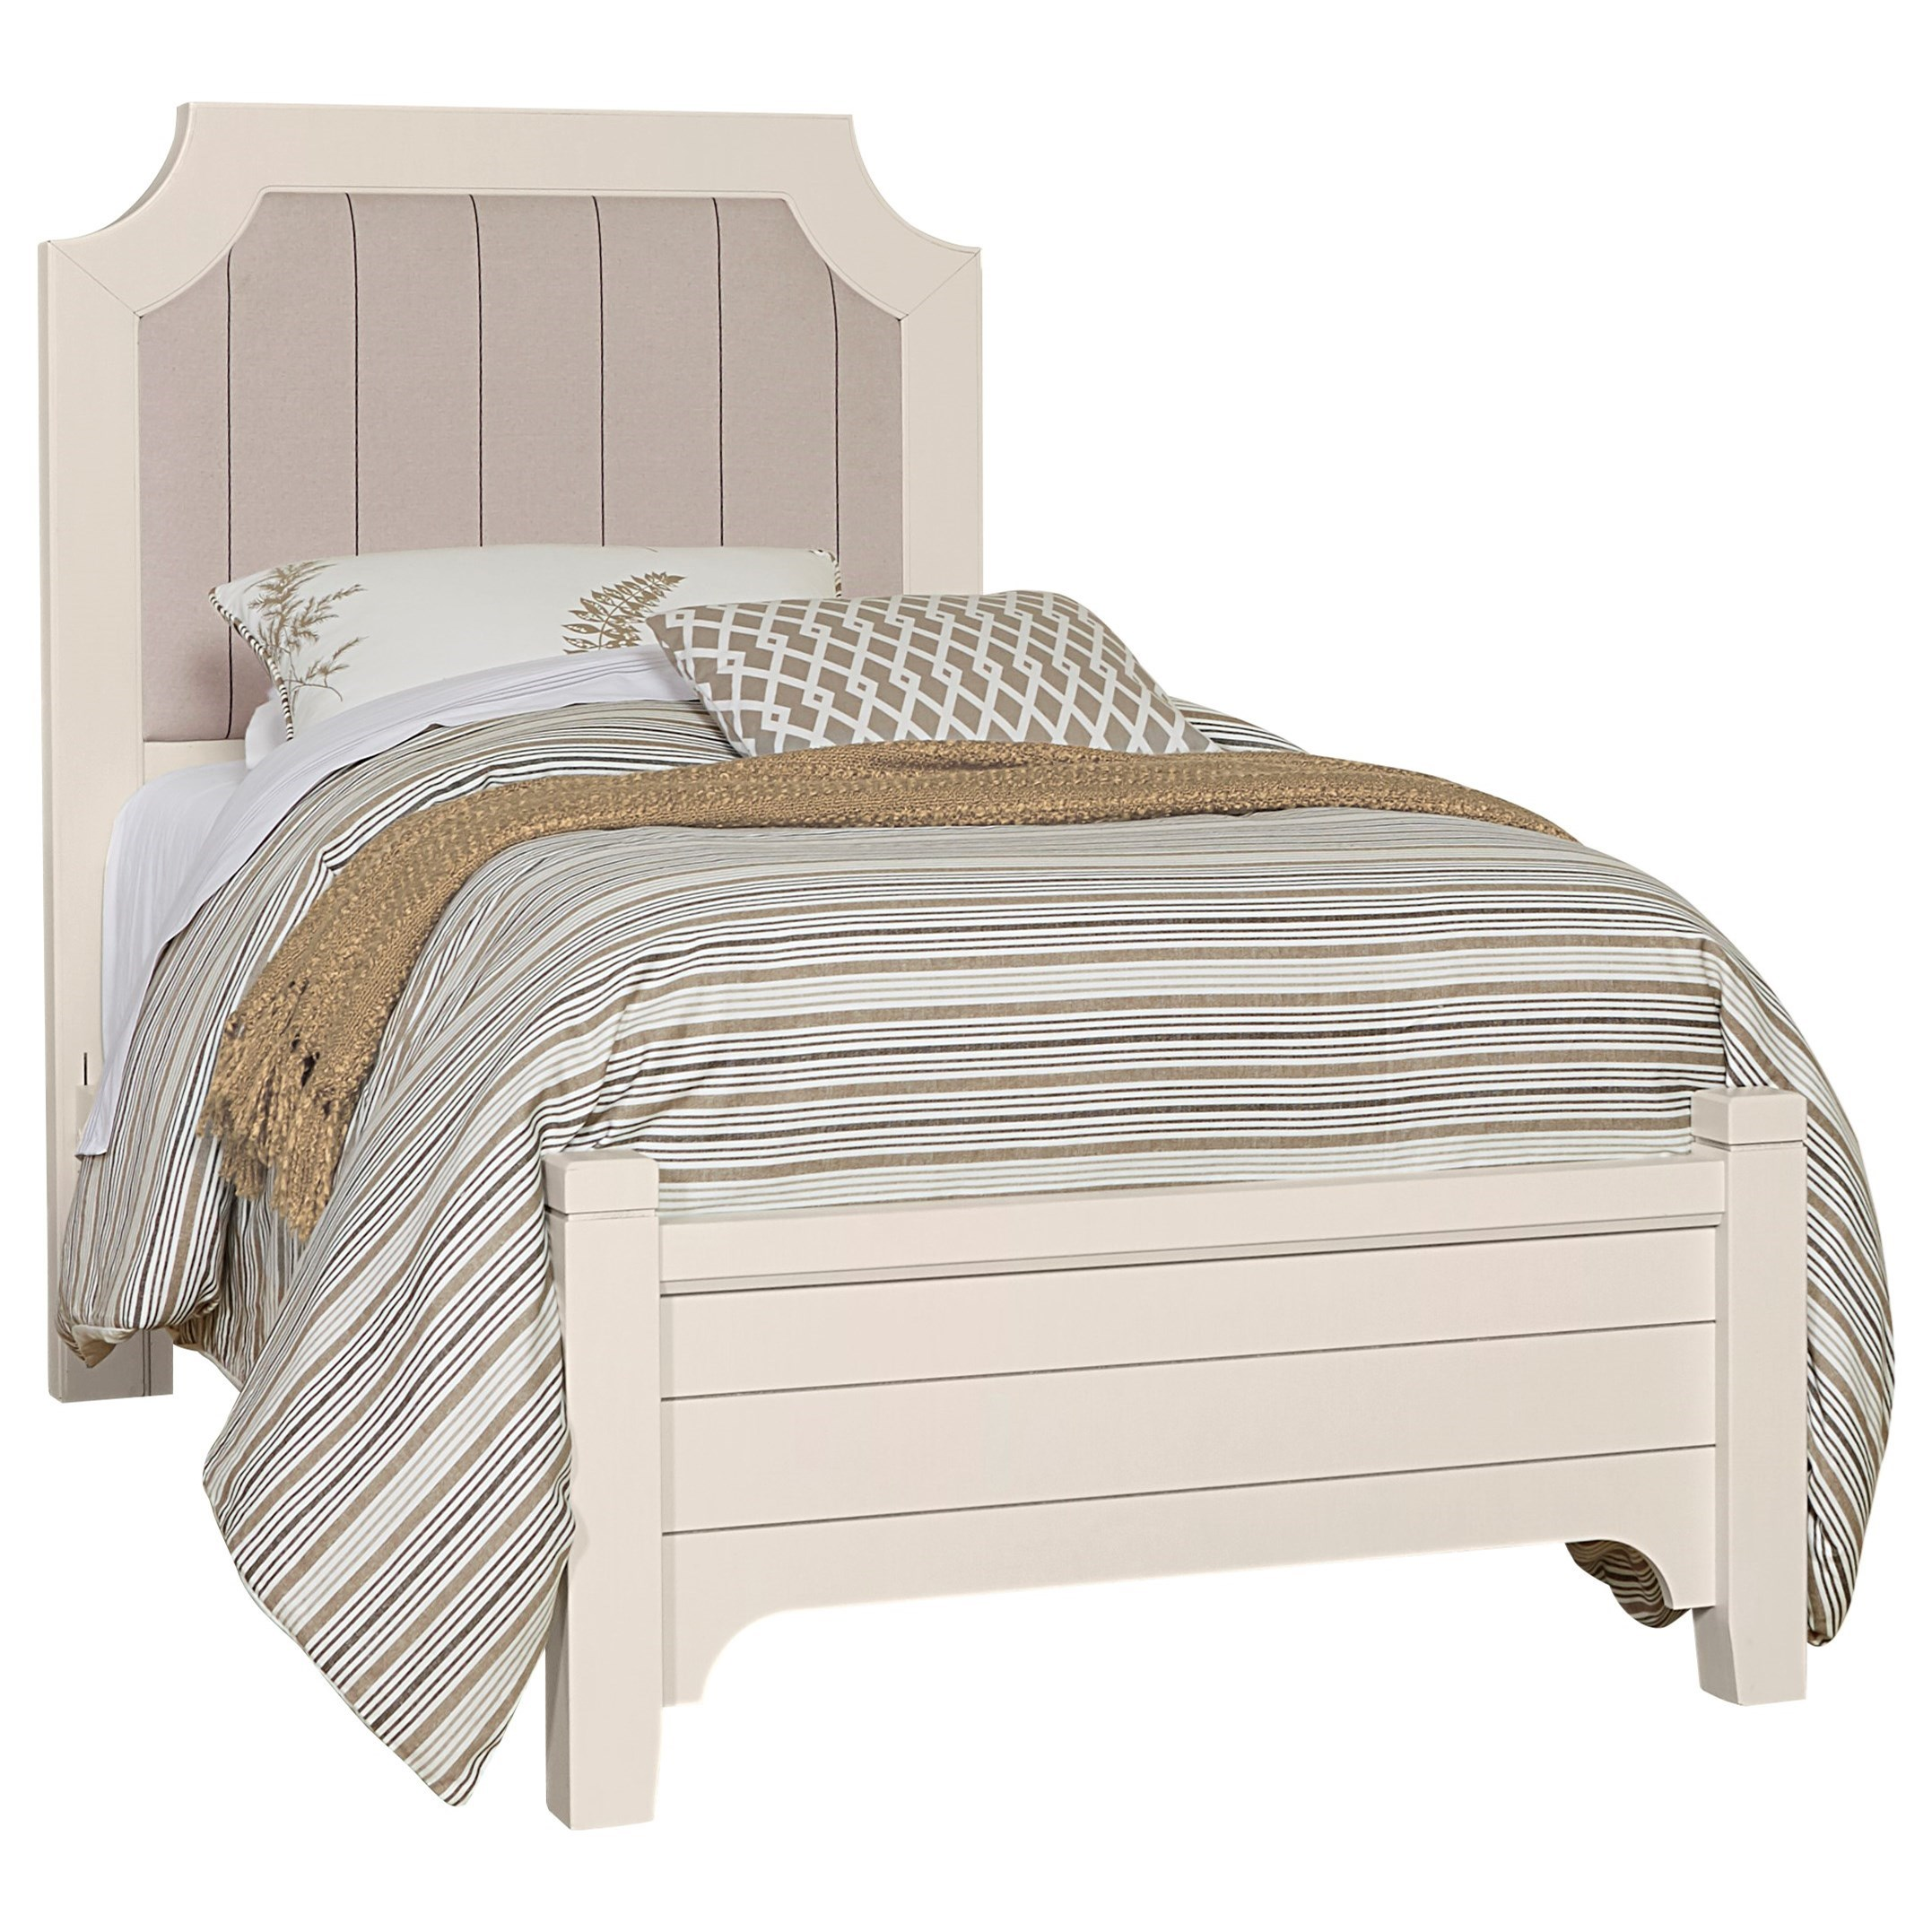 Bungalow Twin Upholstered Bed Low Profile Footboard by Vaughan-Bassett at Crowley Furniture & Mattress